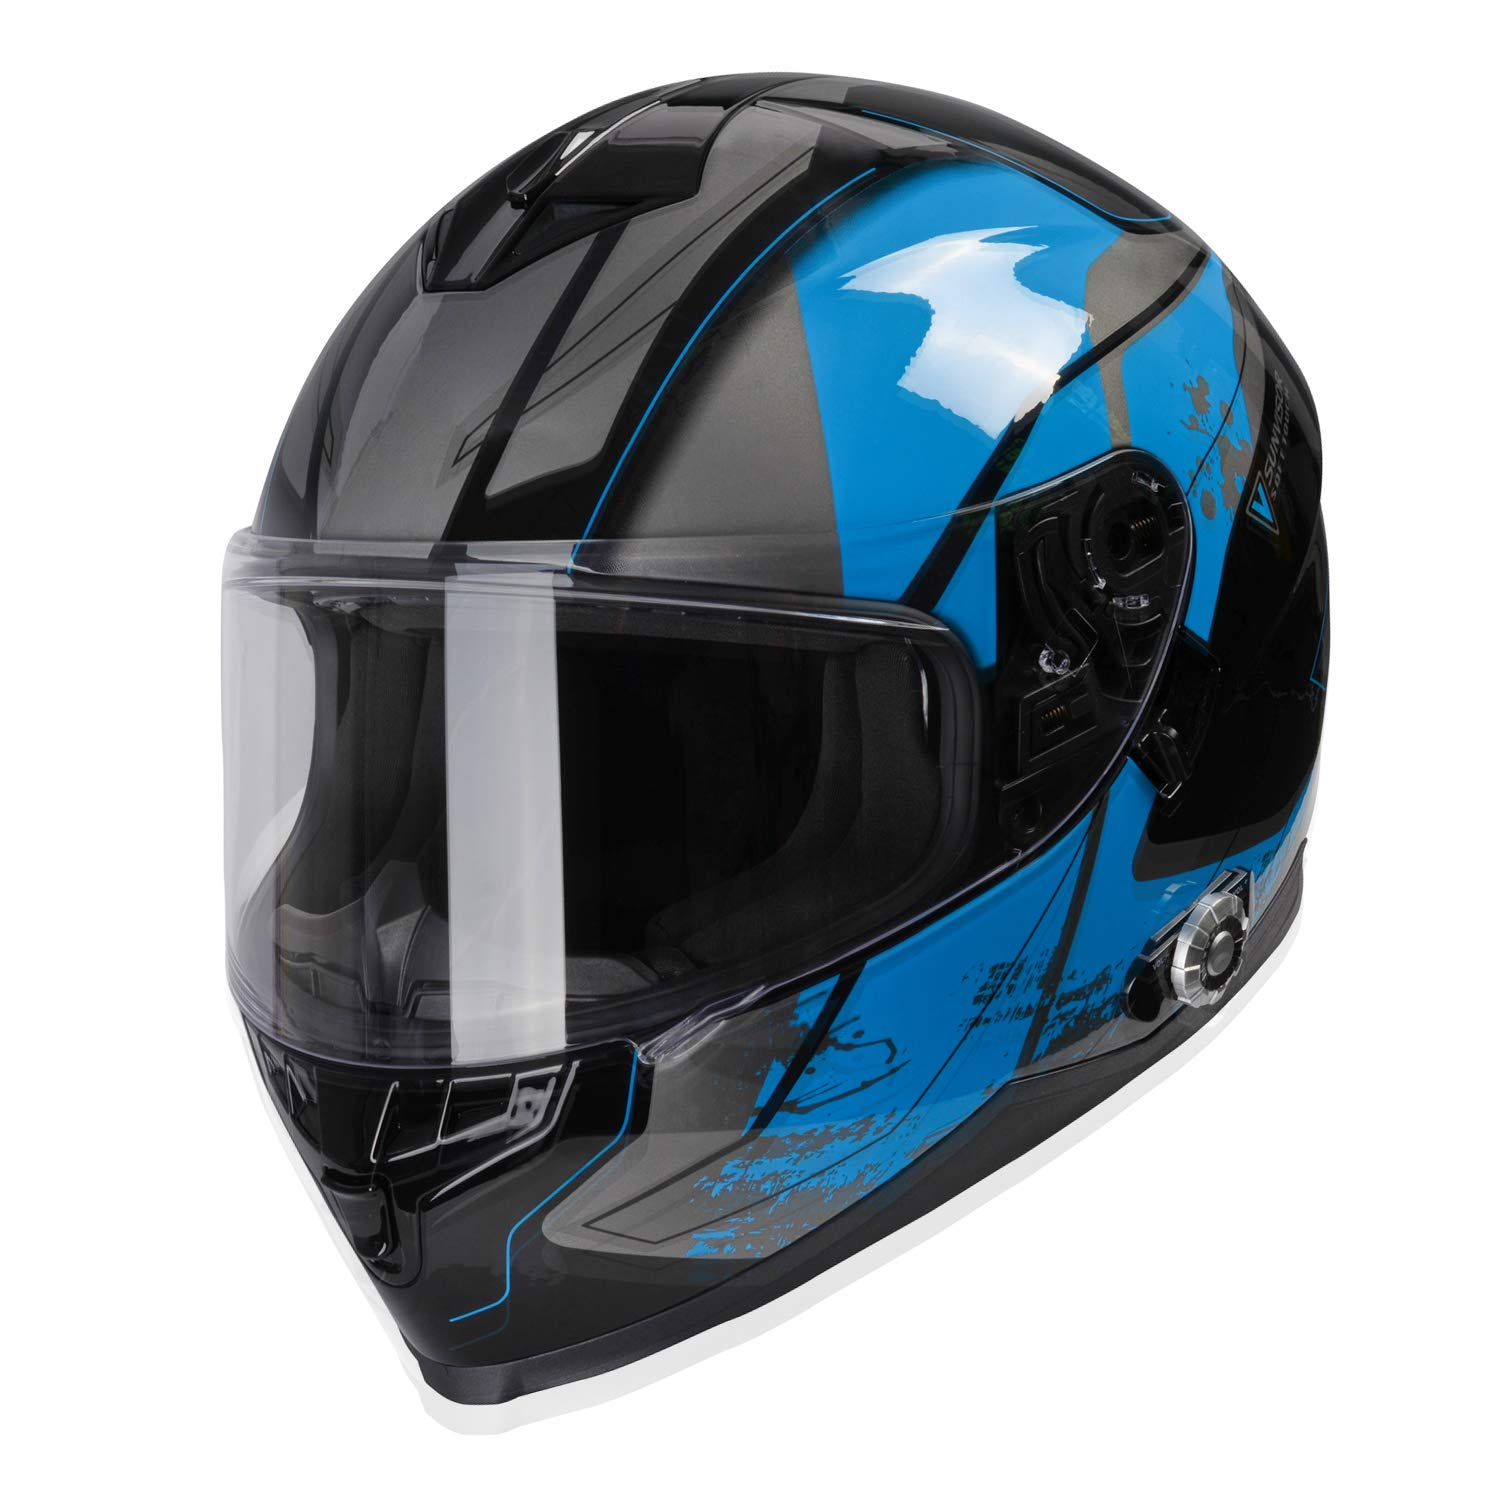 FreedConn BM22 Best Modular Motorcycle Helmet